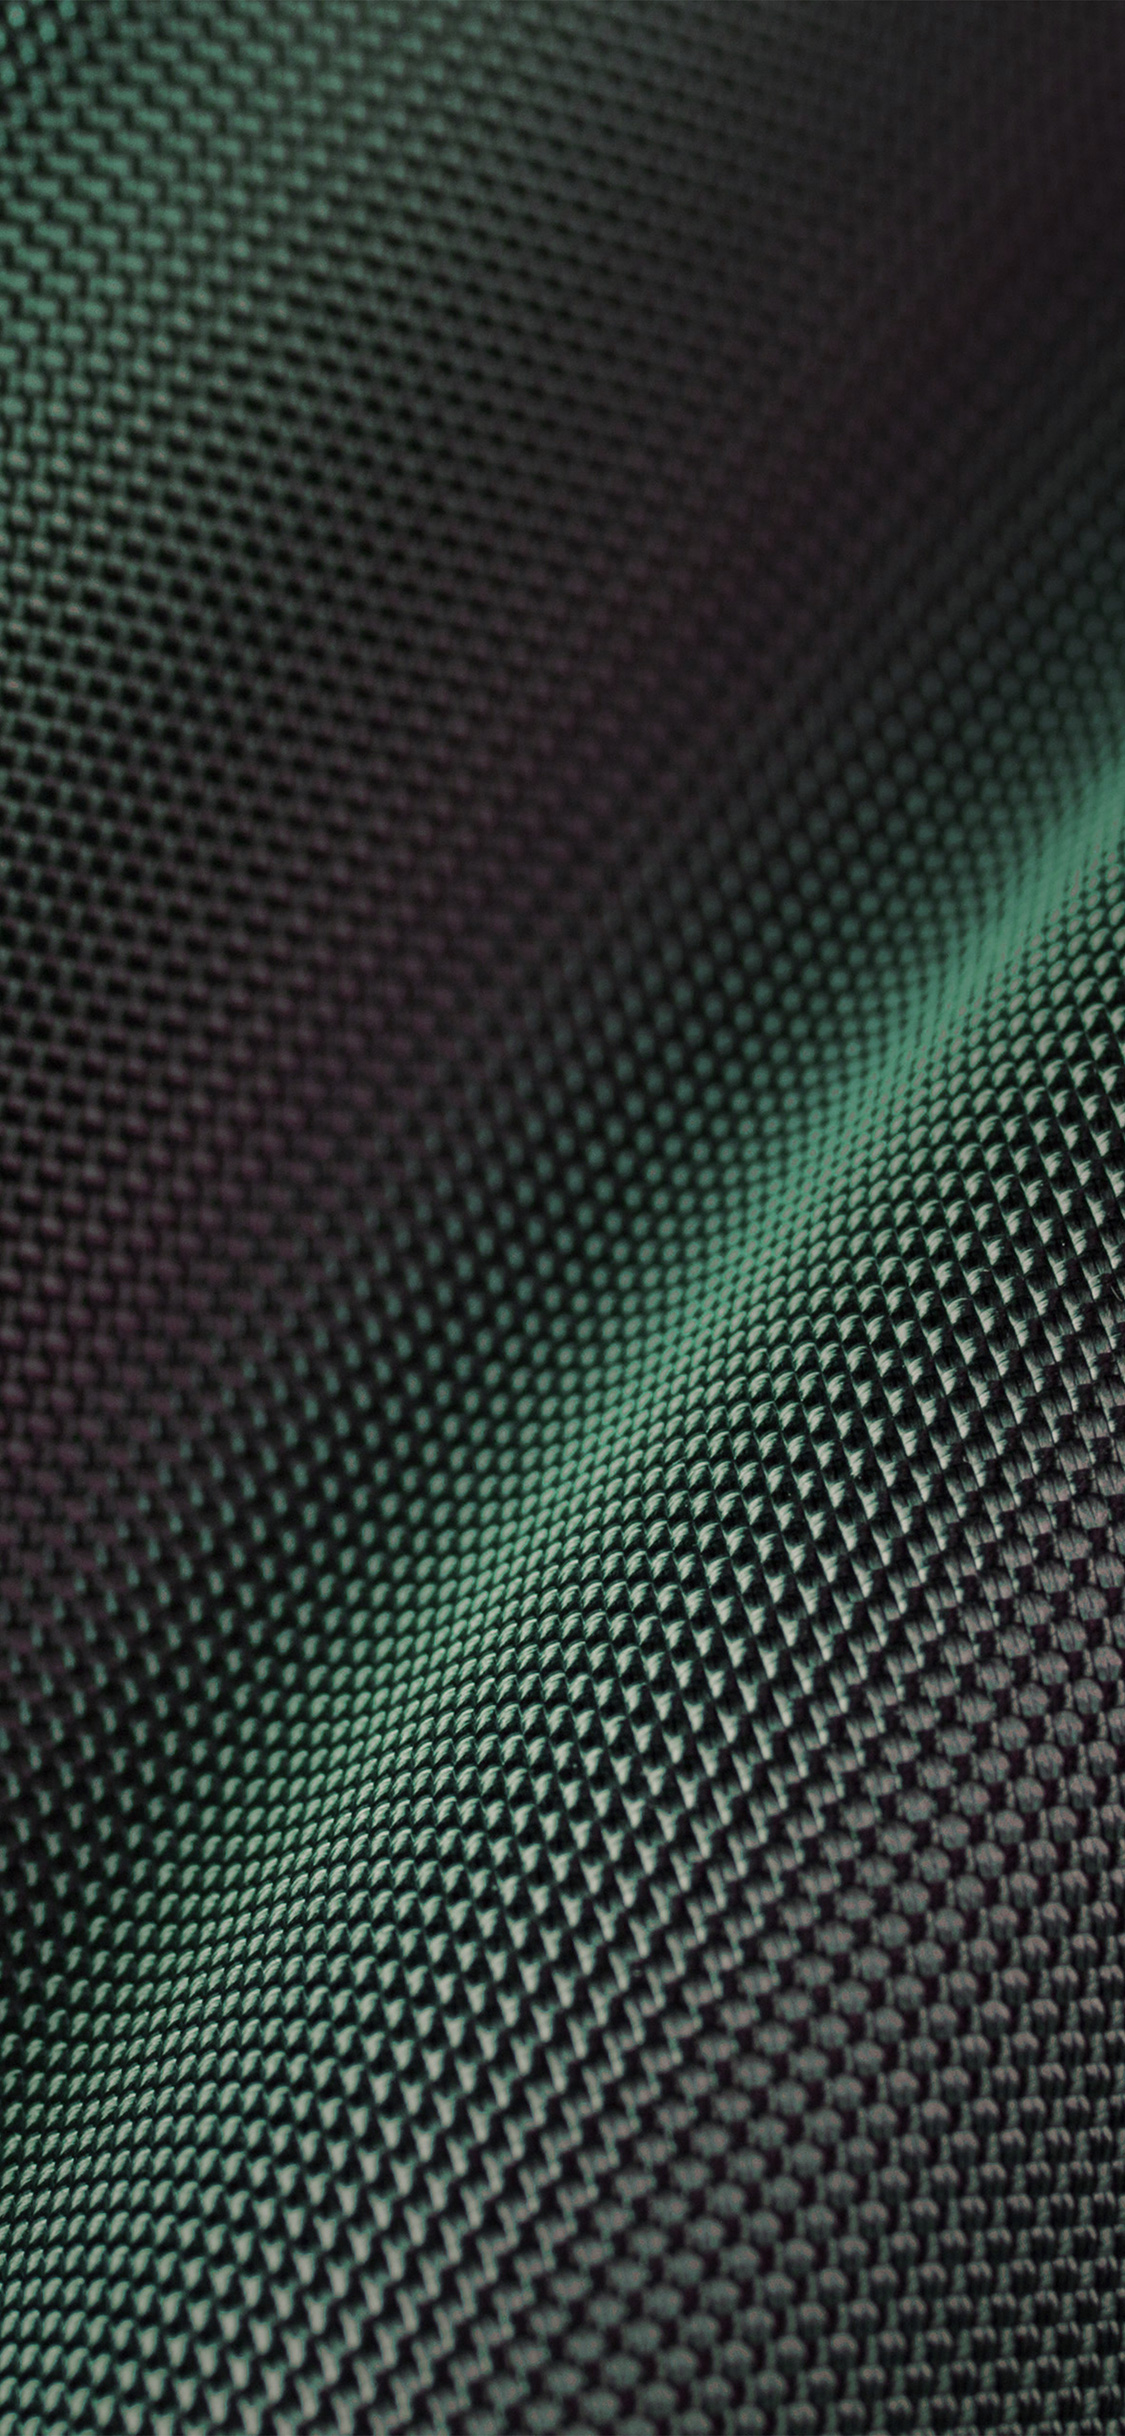 iPhoneXpapers.com-Apple-iPhone-wallpaper-vl28-texture-dots-samsung-galaxy-green-pattern